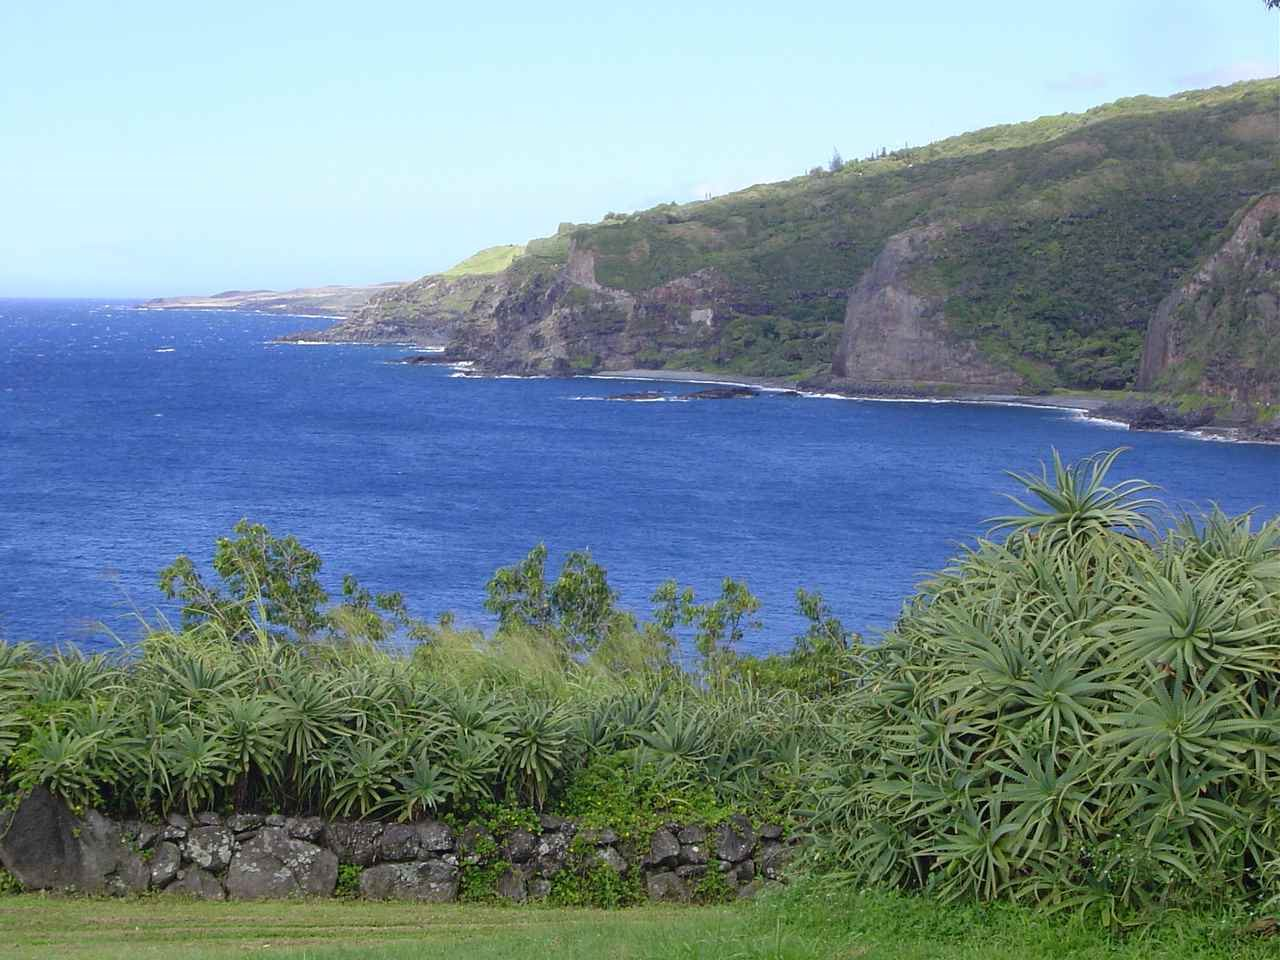 Photo of 39698 Hana Hwy, Hana, HI 96713 (MLS # 385195)